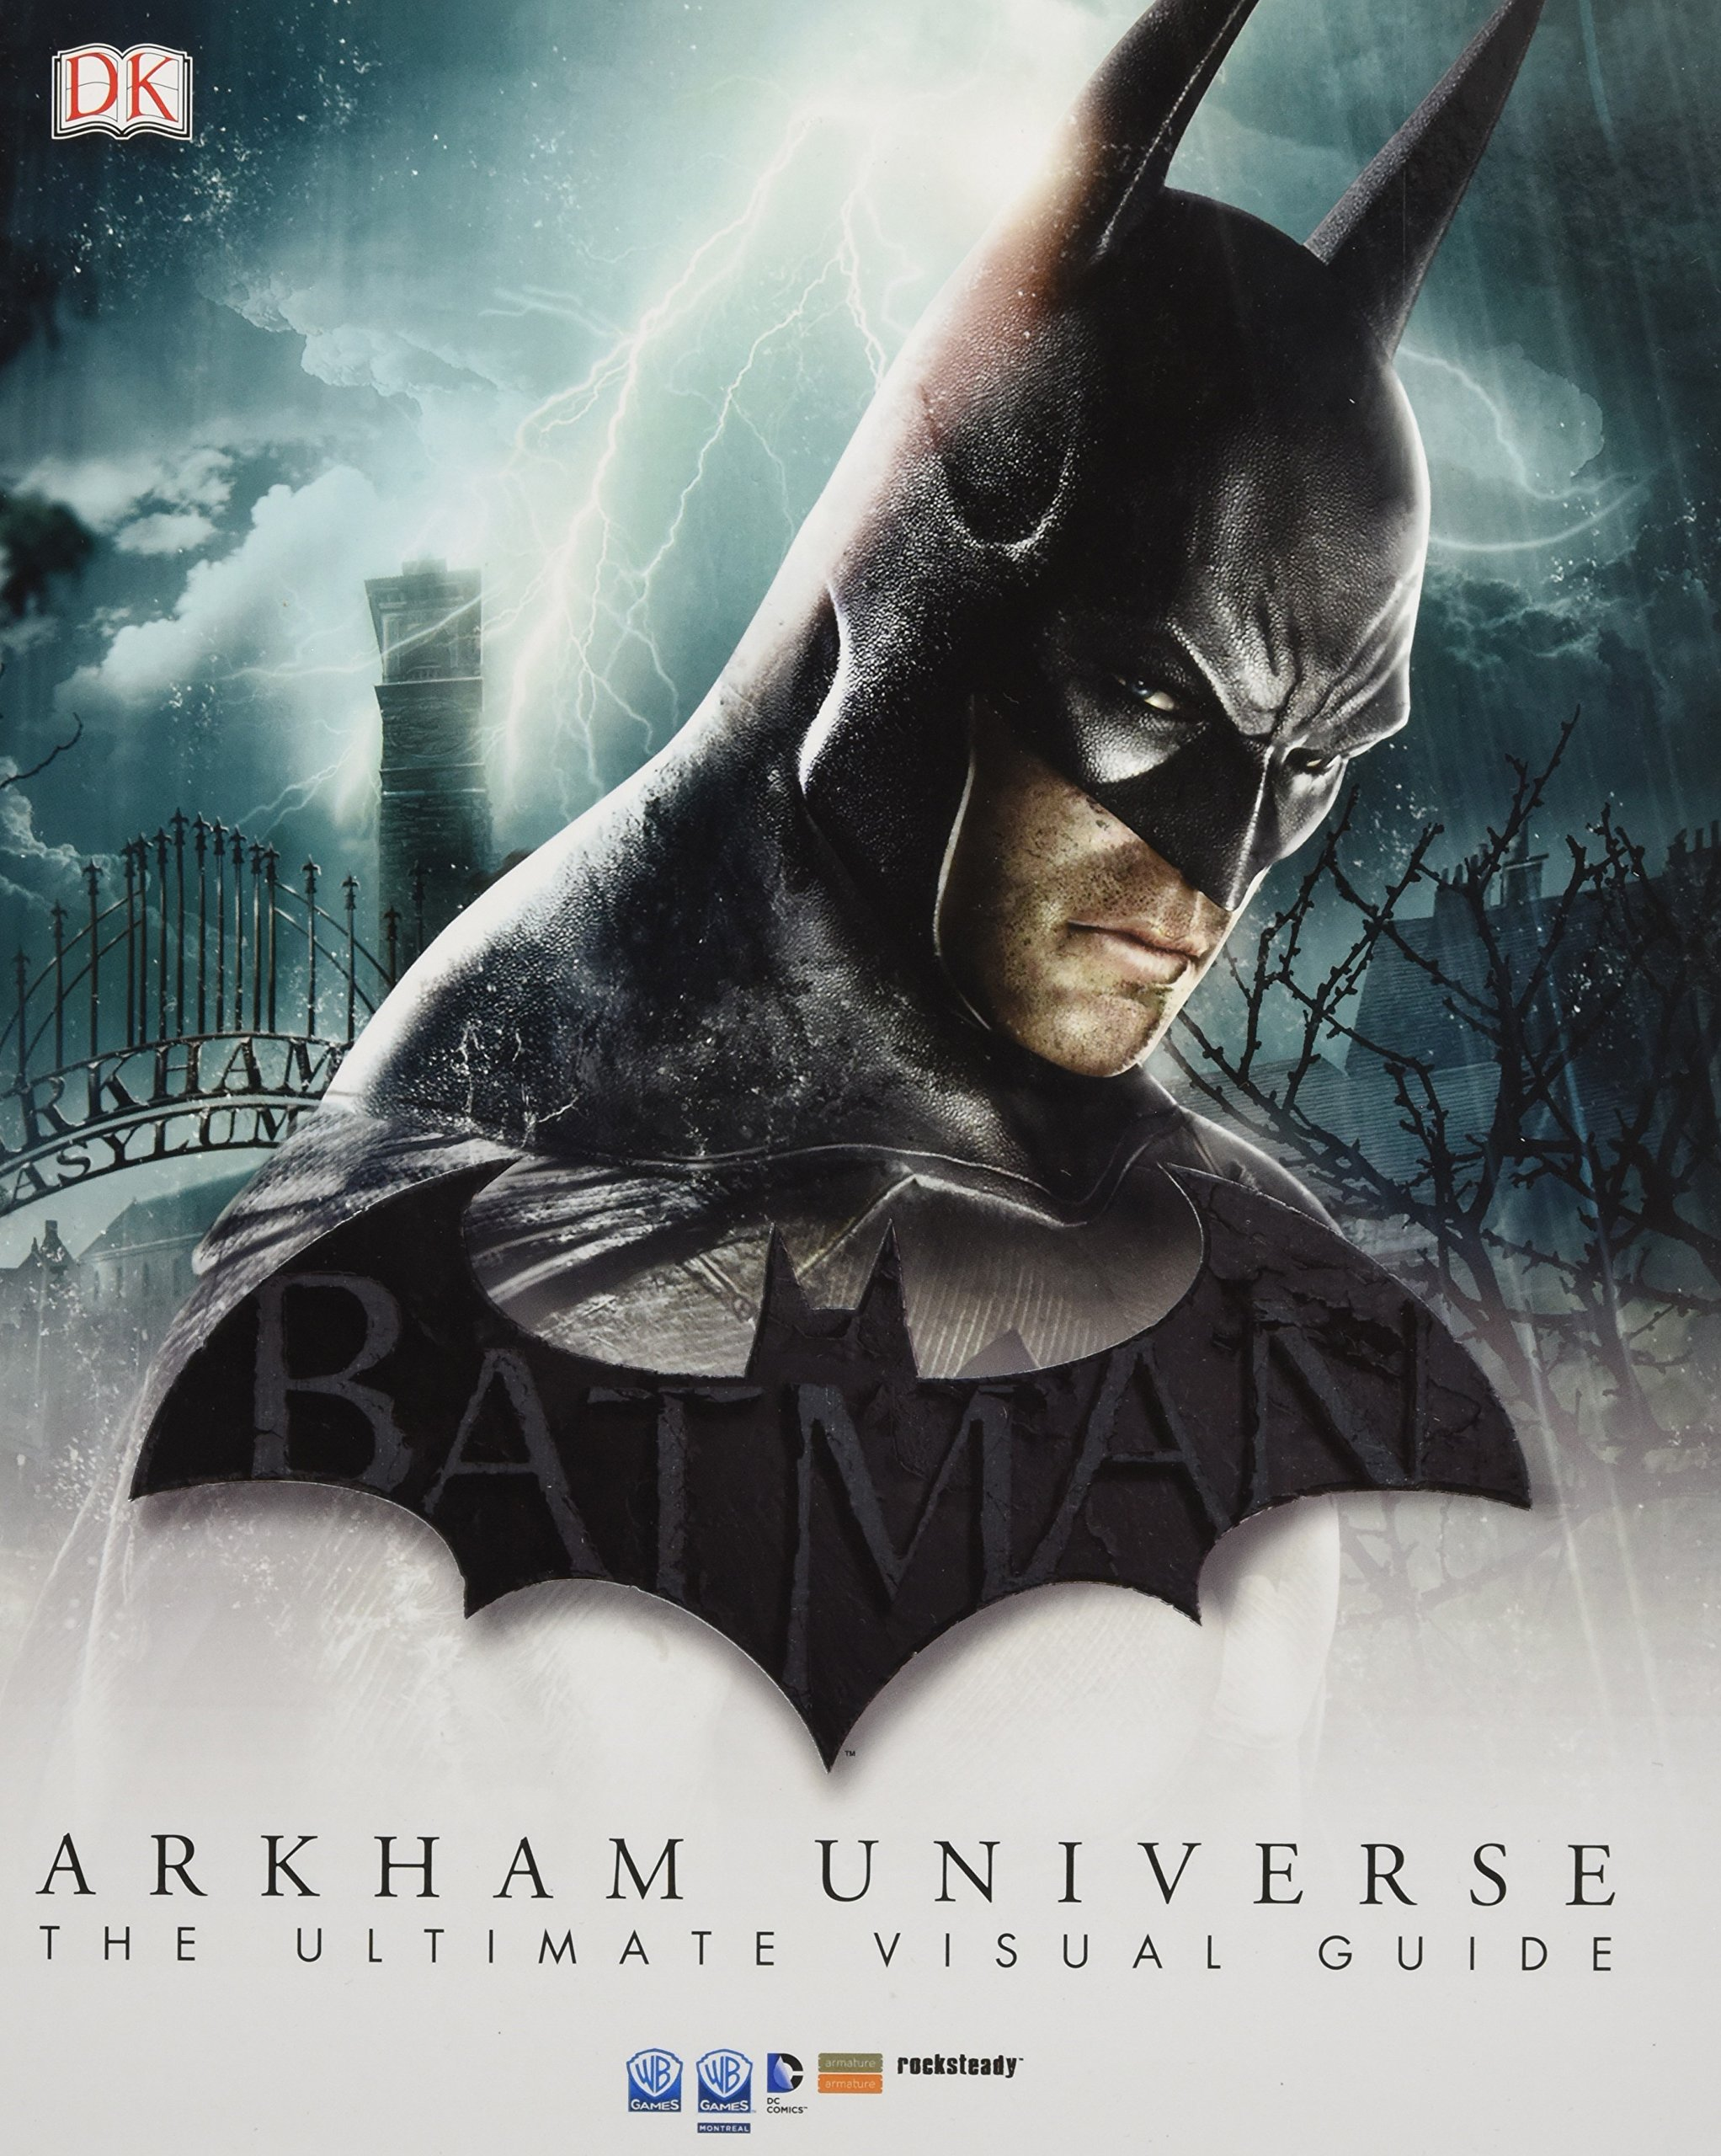 batman-arkham-universe-the-ultimate-visual-guide